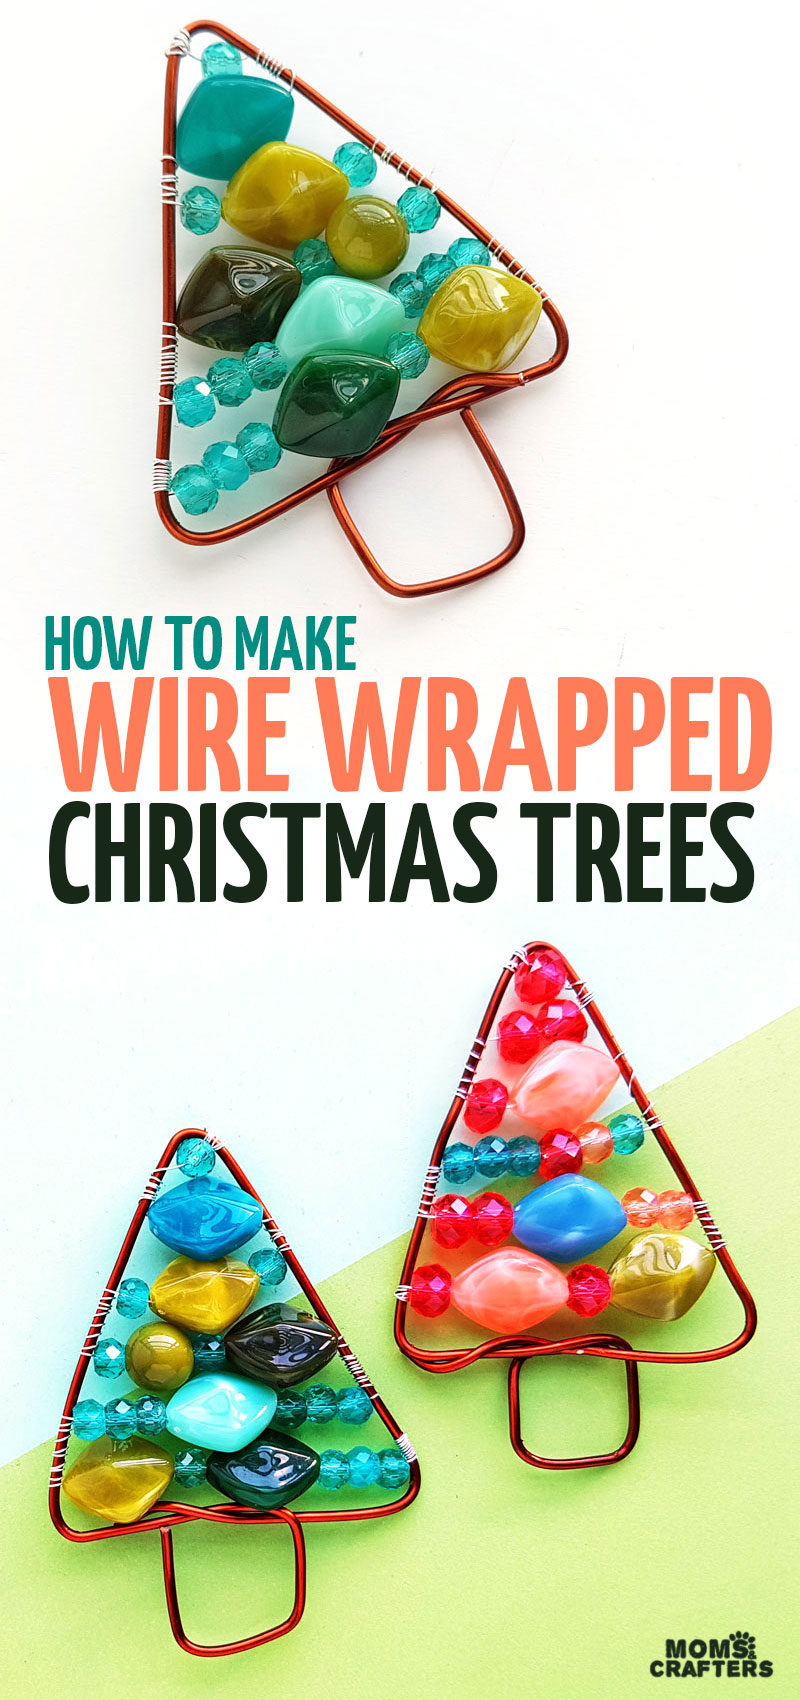 Craft your own DIY beaded Christmas trees and learn how to make wire wrapped trees. This easy wire wrapping project for beginners is fun for making holiday jewelry, beaded ornaments, or wall hangings for Christmas decor!